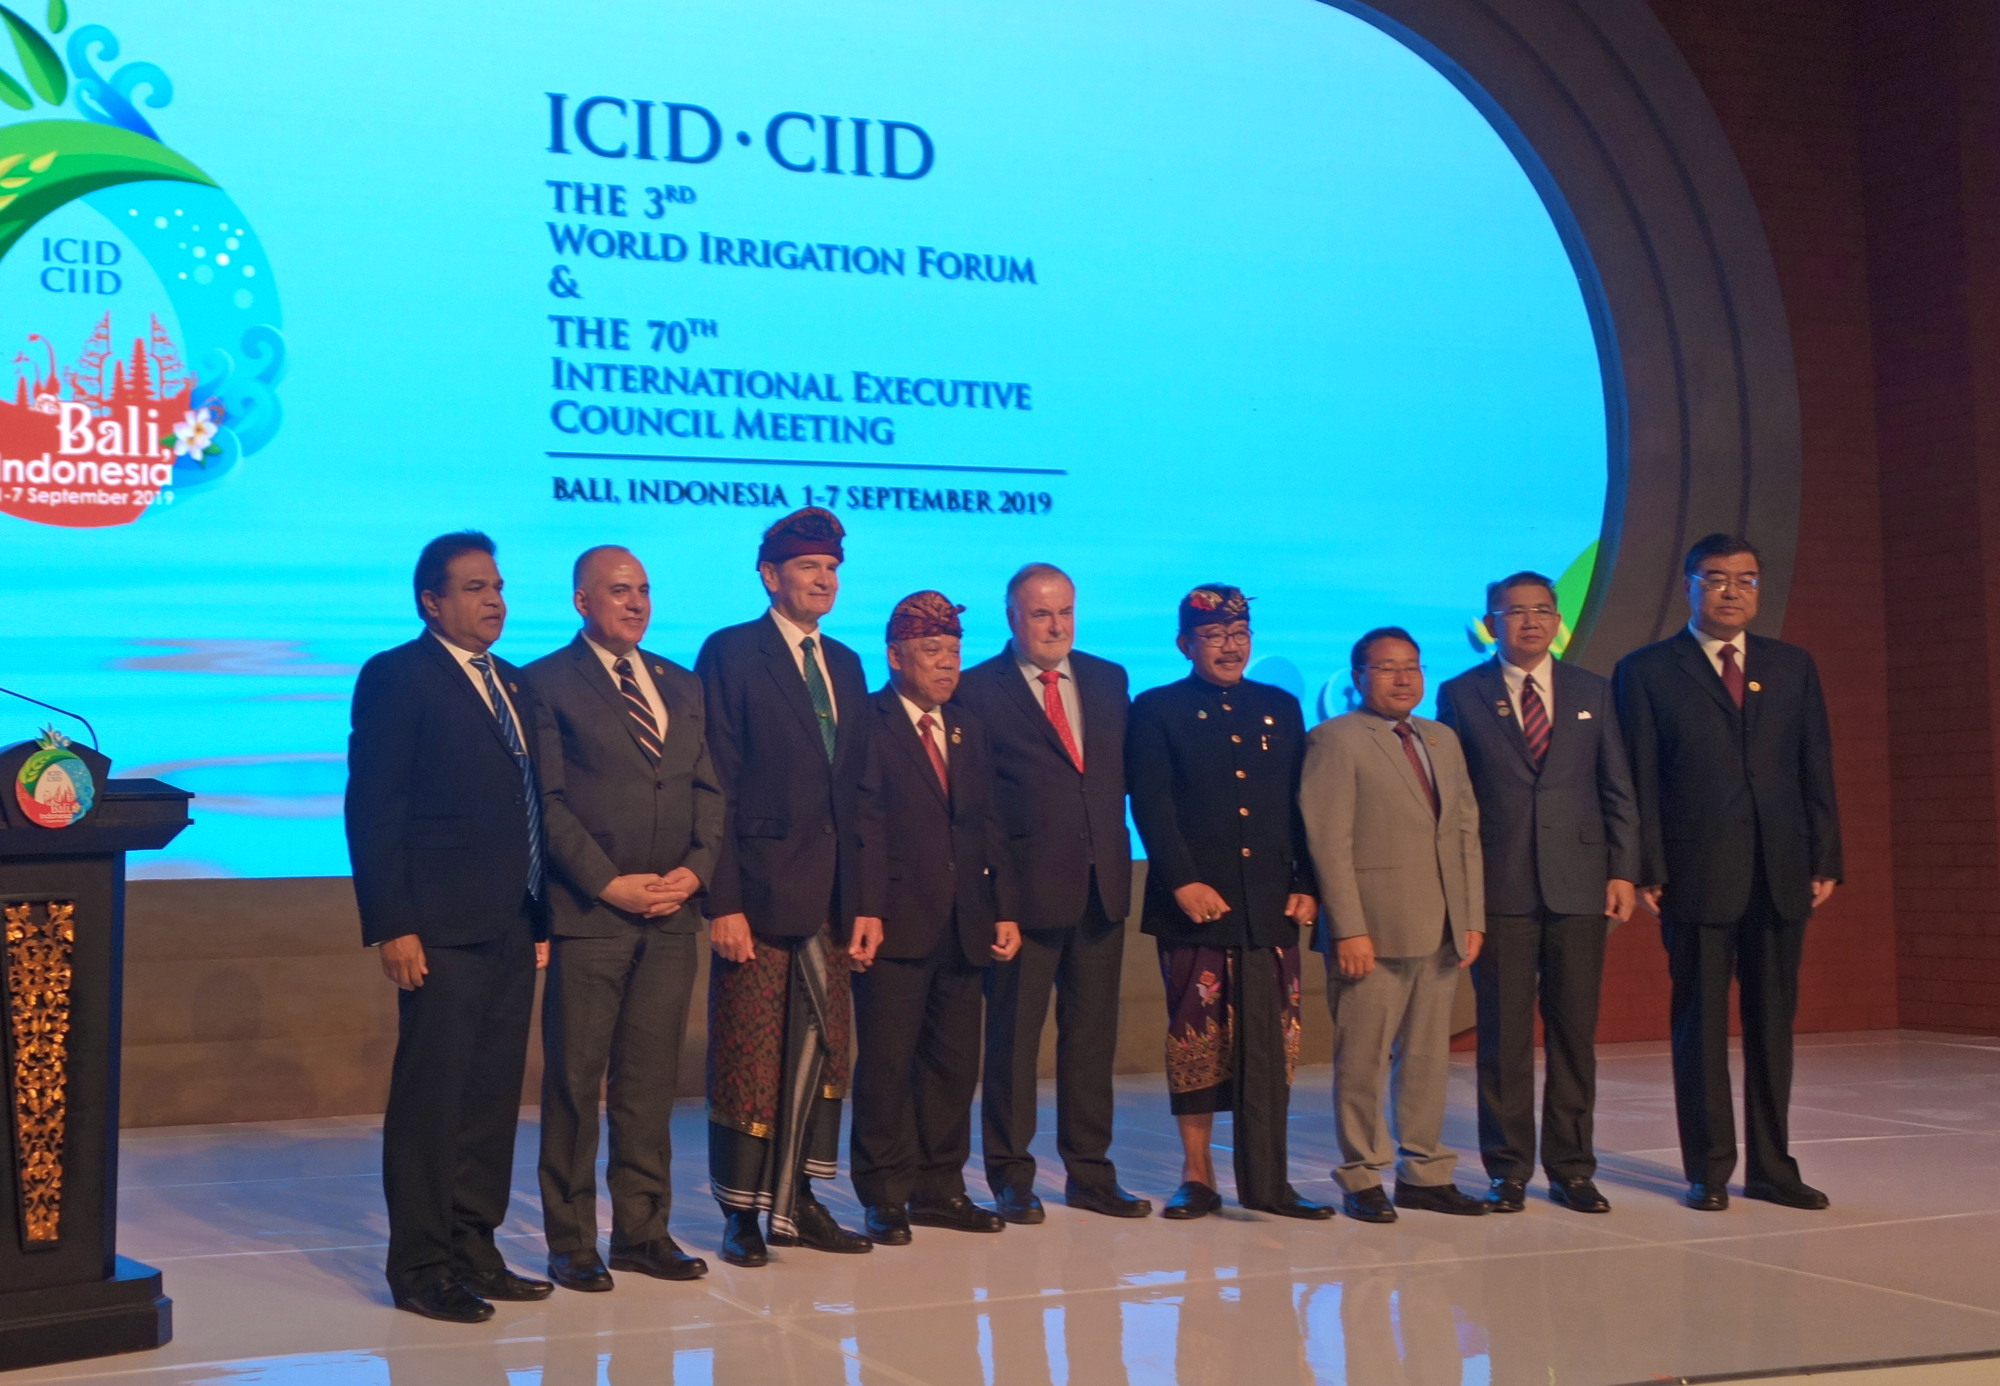 Opening Ceremony of the 3rd World Irrigation Forum, Bali, Indonesia, 2 September 2019. Felix Reinders, President of ICID (third from left); Basuki Hadimuljono, Minister of Public Works and Housing of Indonesia (fourth from left); Loïc Fauchon, President of the World Water Council (center); Tjokorda Oka Artha Ardana Sukawati, Vice Governor of Bali Province (fourth from right); and other dignitaries.